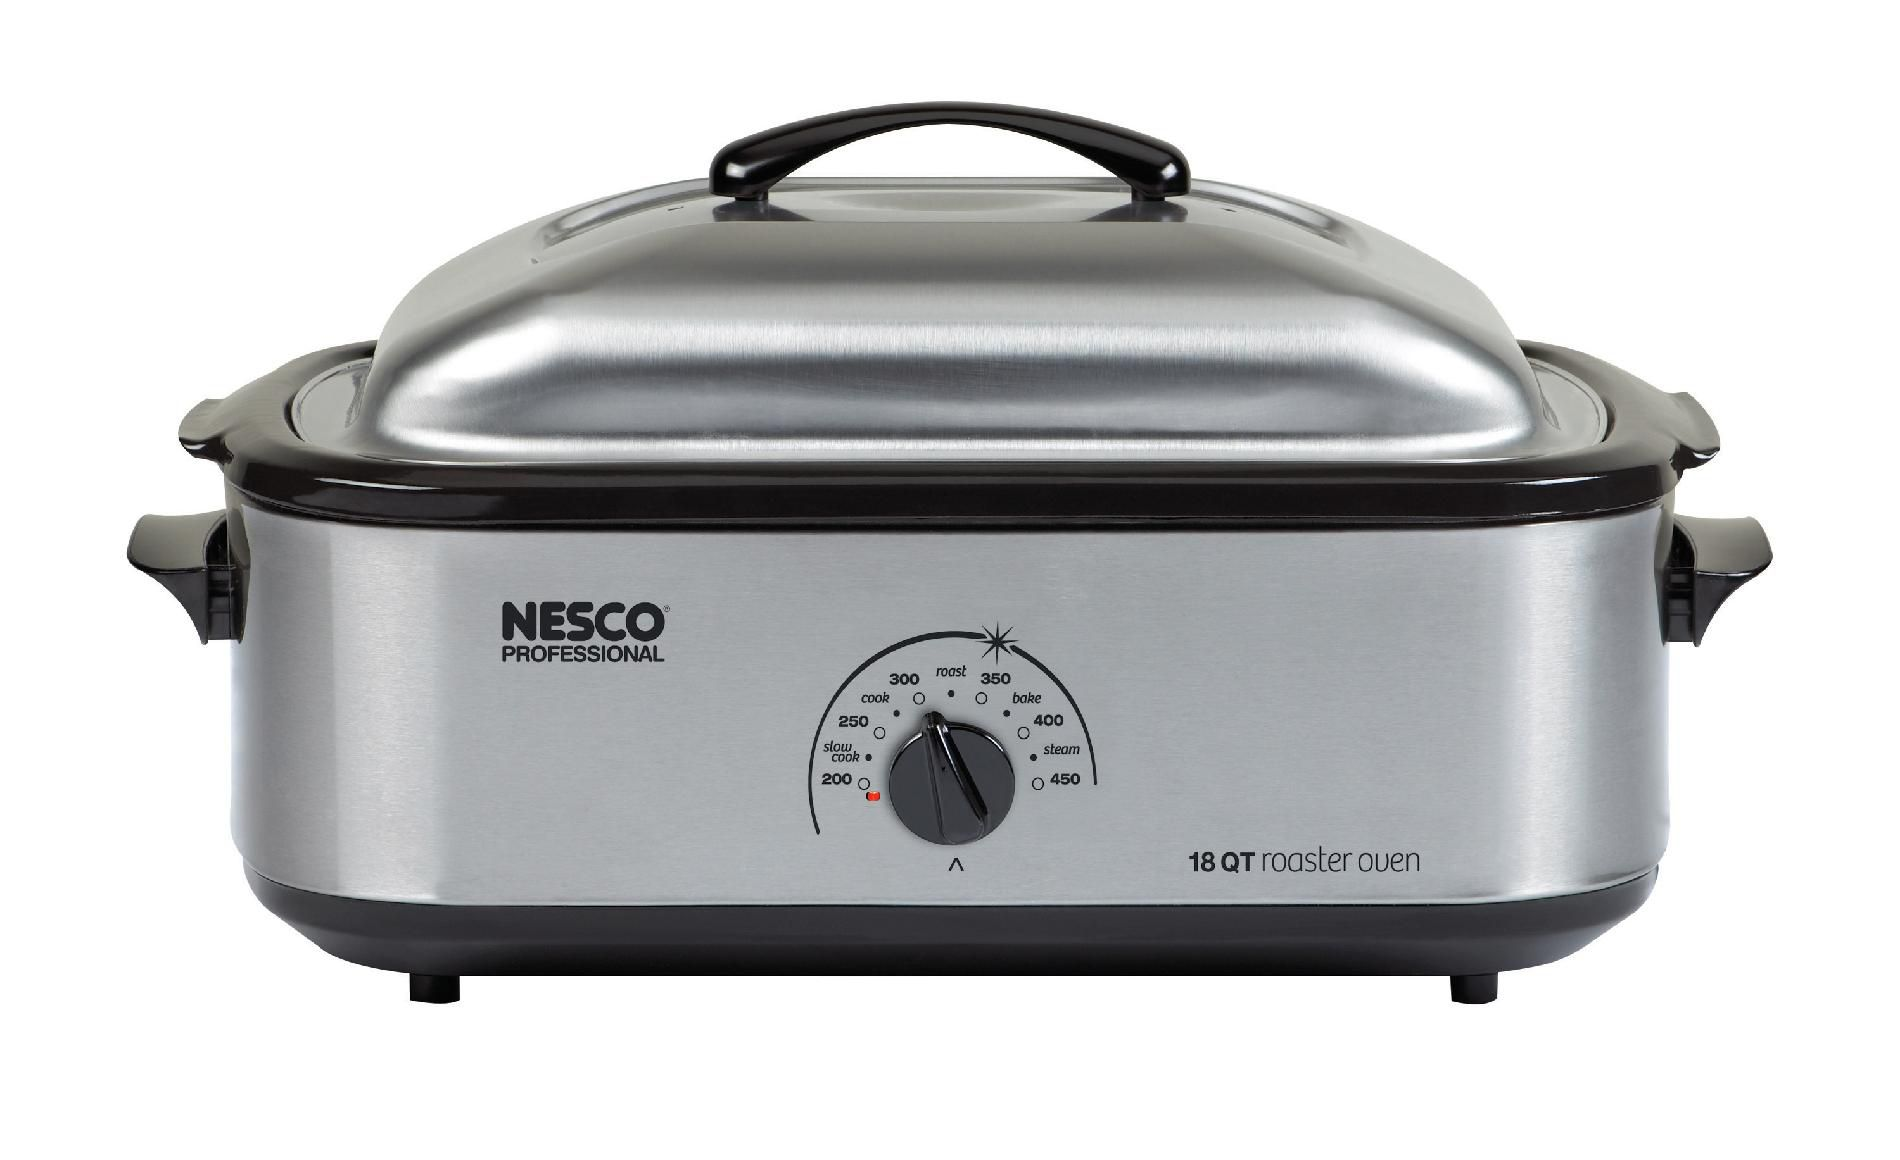 Nesco Professional 18 Qt. Stainless Steel Roaster with Non-Stick Cookwell